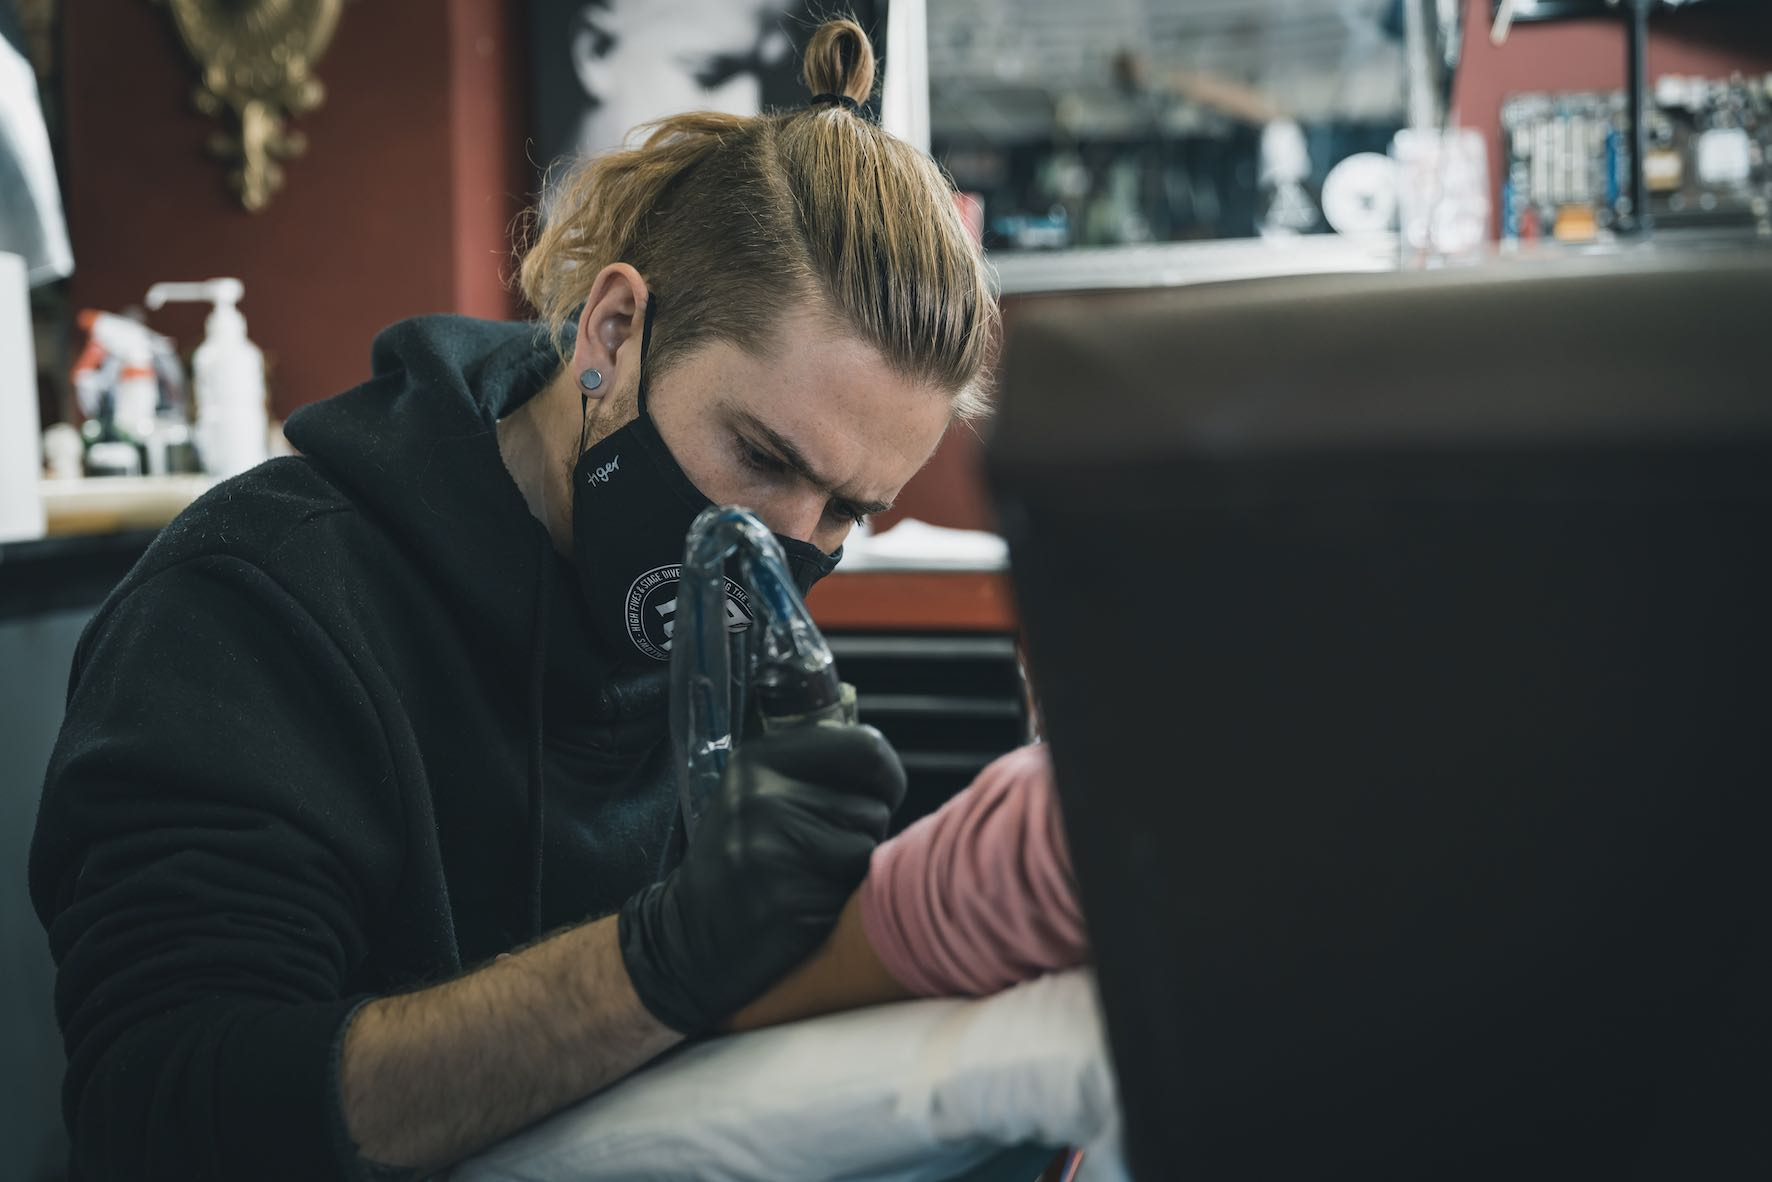 Tattoo Artist Nathan Ferreira working on a client at Ting's Tattoo studio